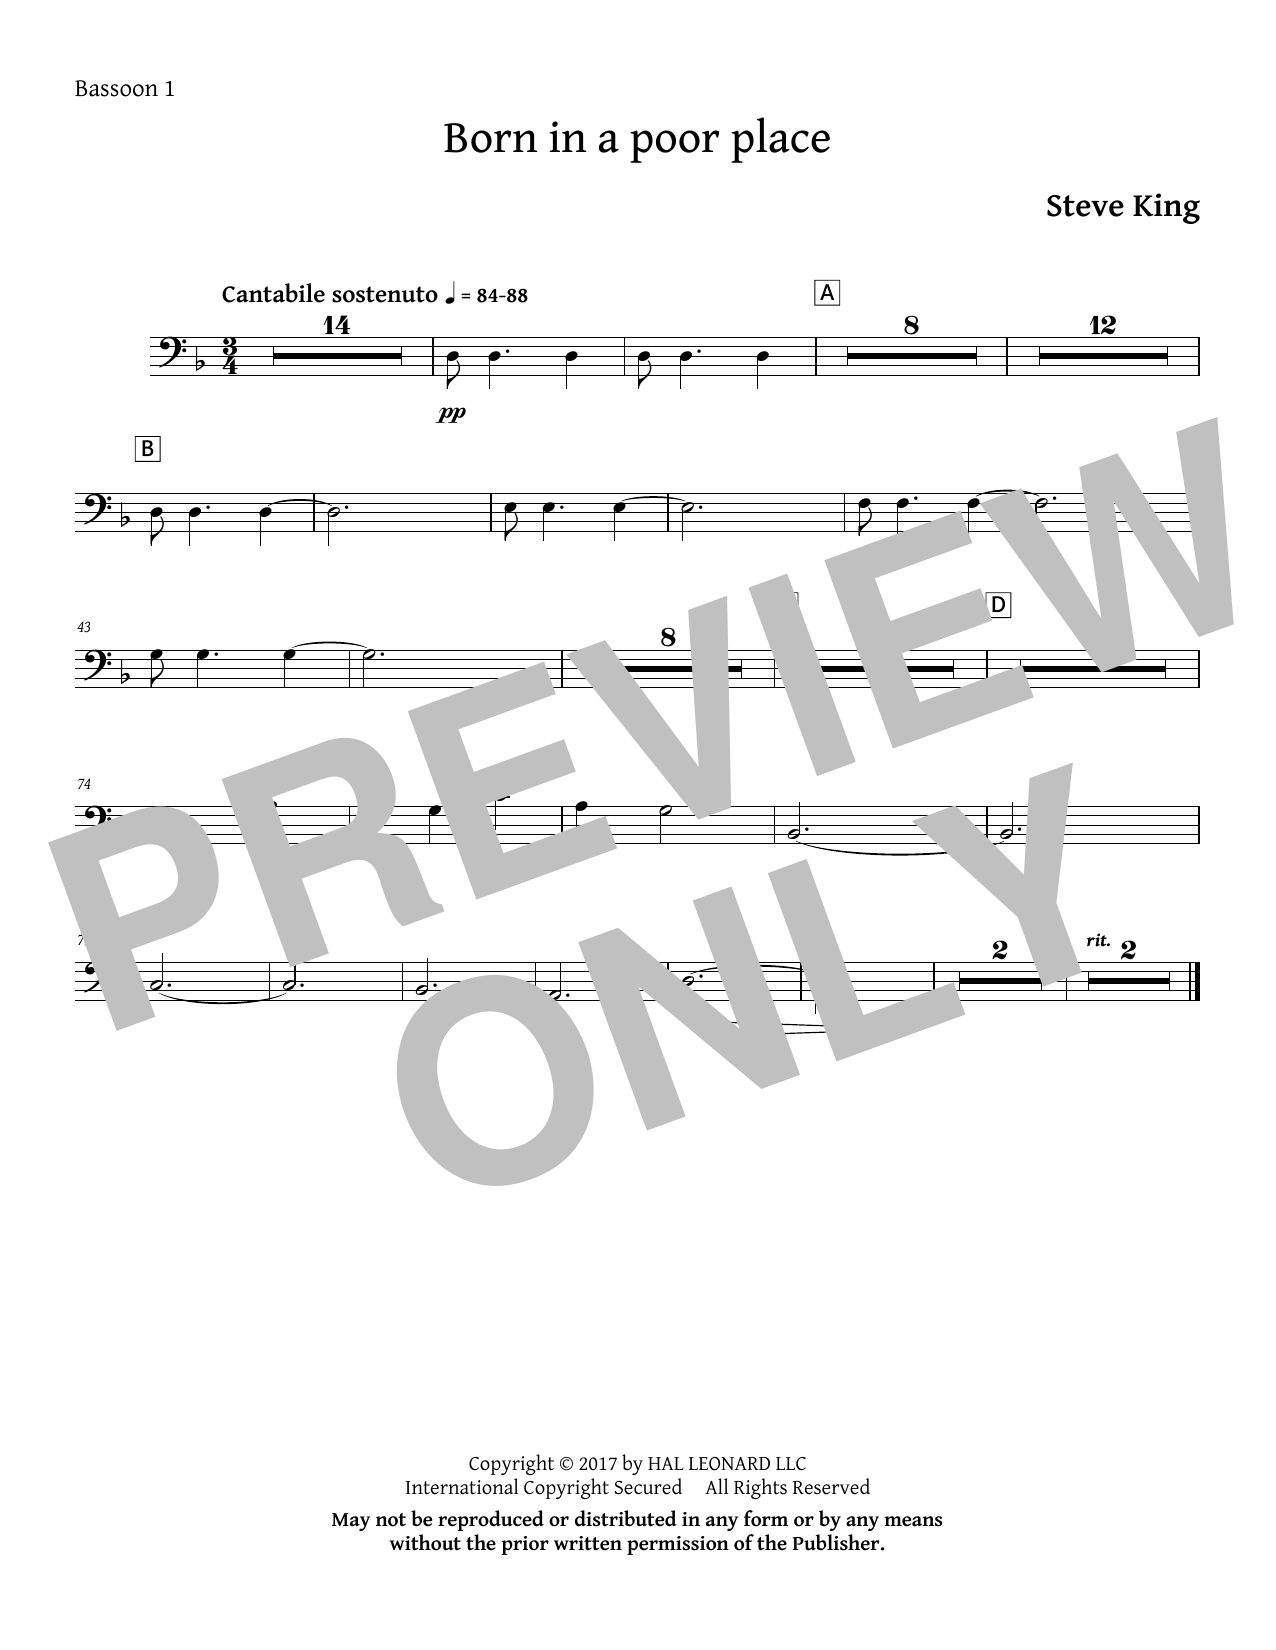 Born in a Poor Place - Bassoon 1 Sheet Music